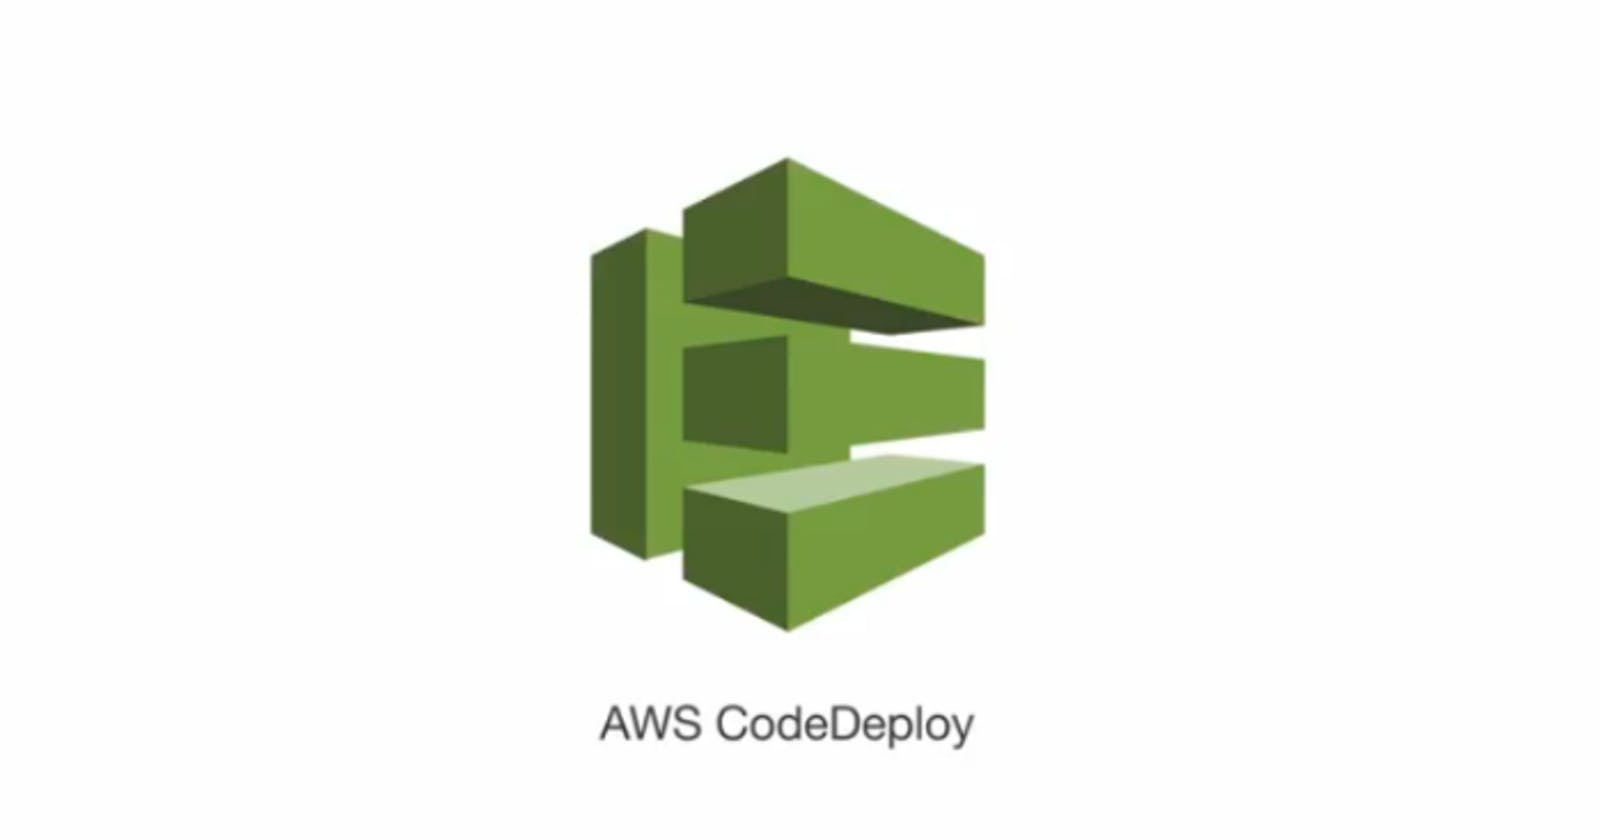 Working with AWS EC2 Autoscaling Group and AWS Codedeploy